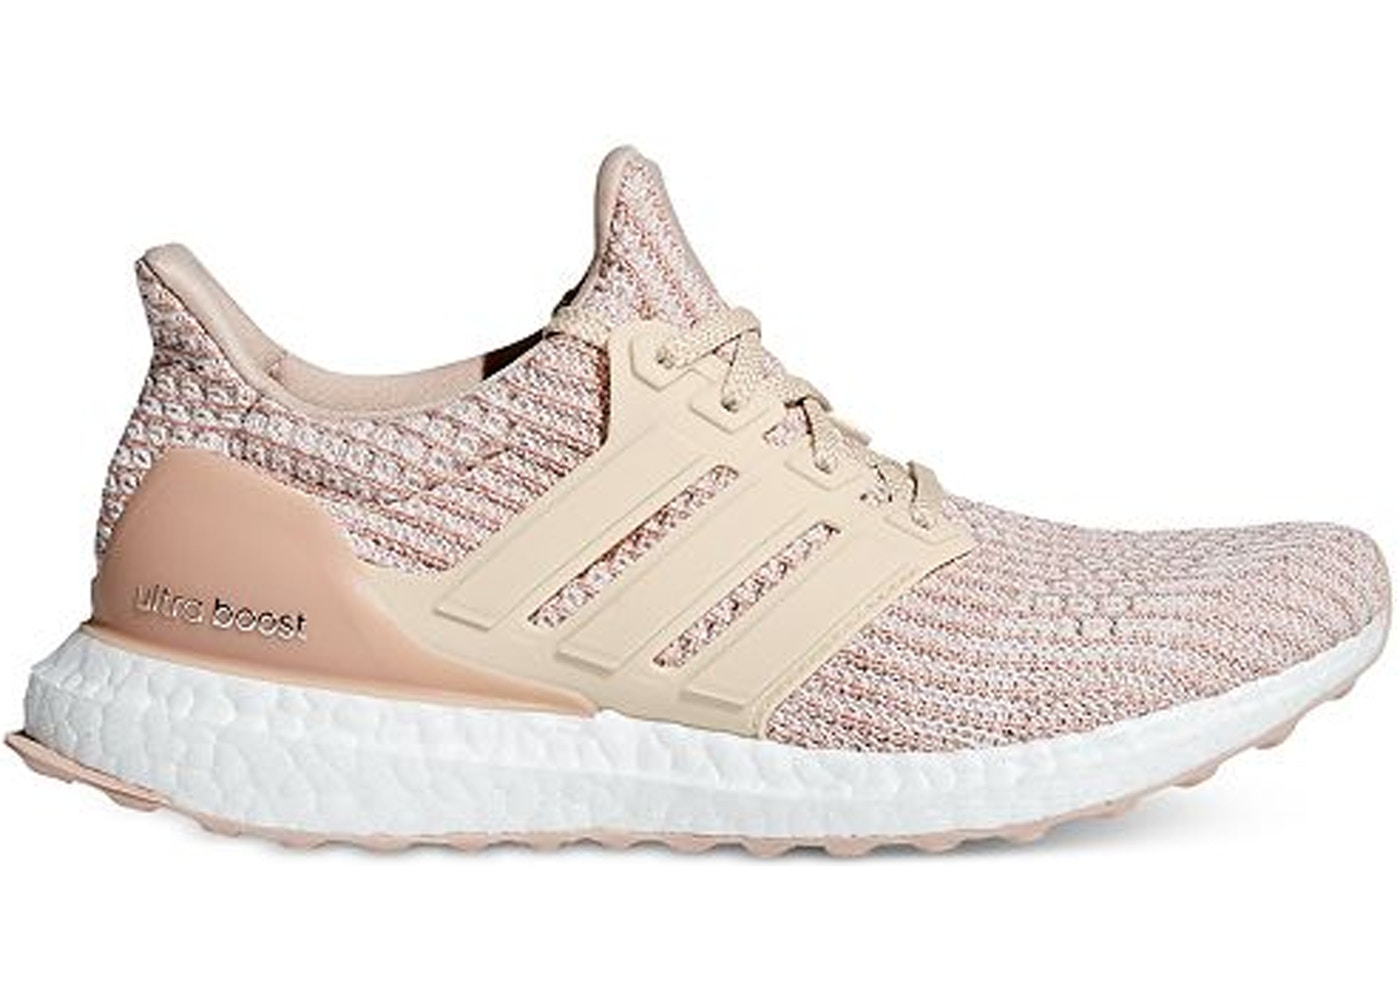 a46477c94cec0 adidas Ultra Boost Shoes - Lowest Ask